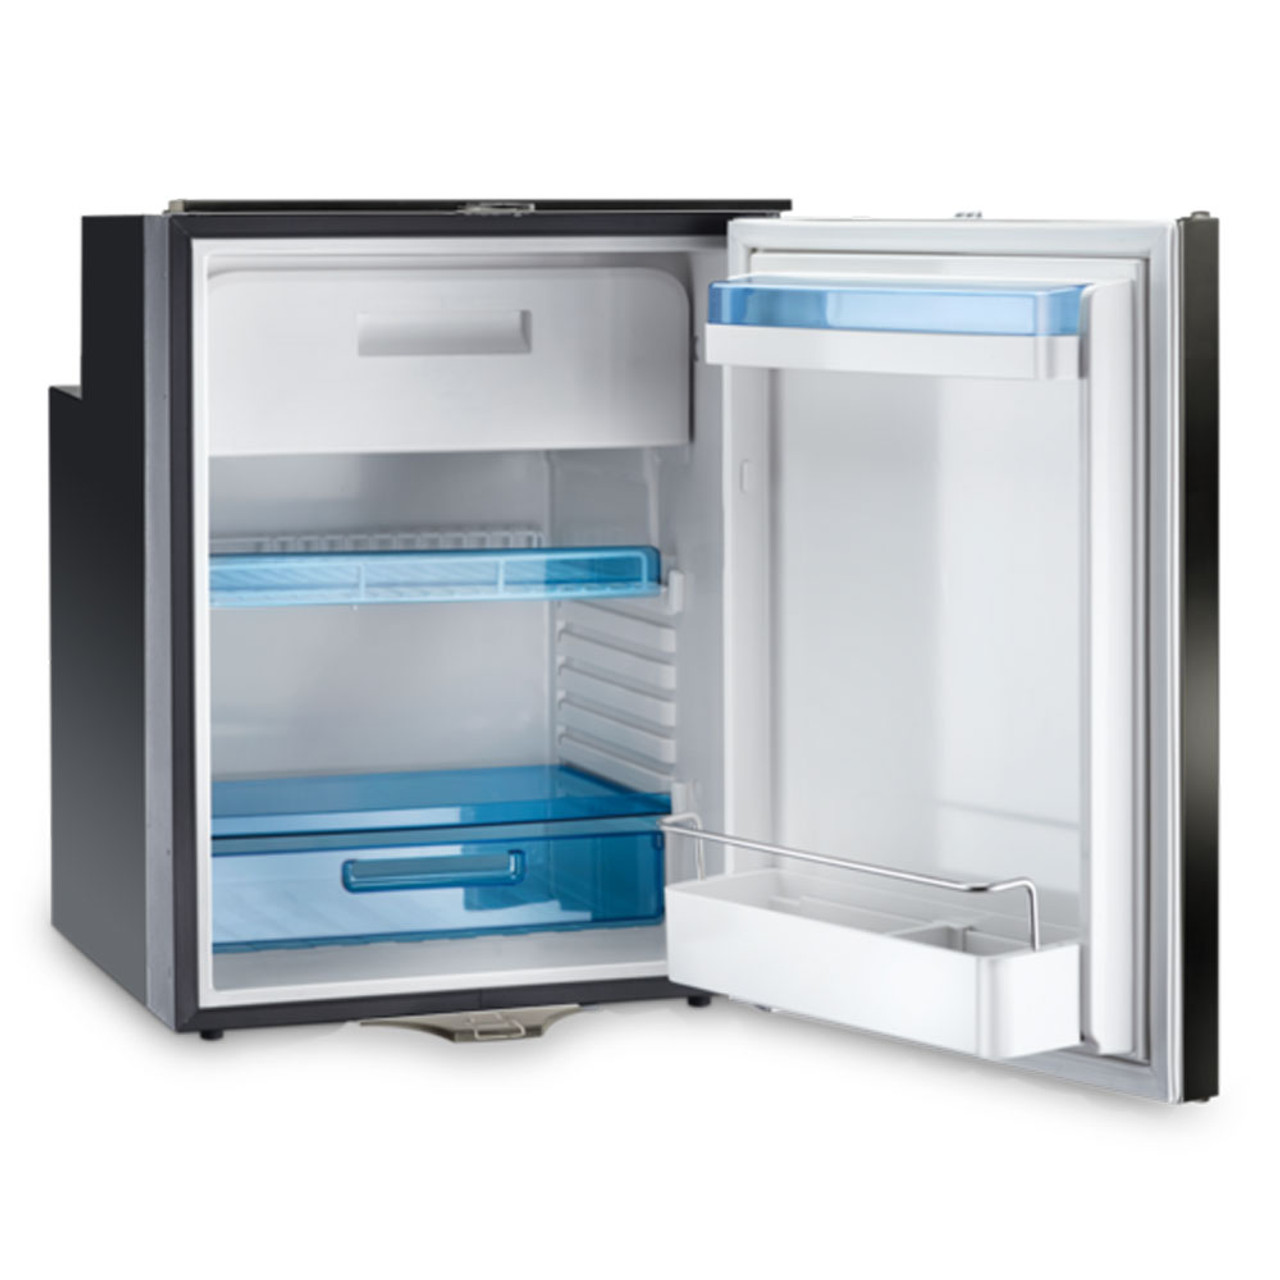 Dometic™ (Coolmatic) CRX-1080U/F Electric Refrigerator Freezer - AC/DC -  2 7 C/F